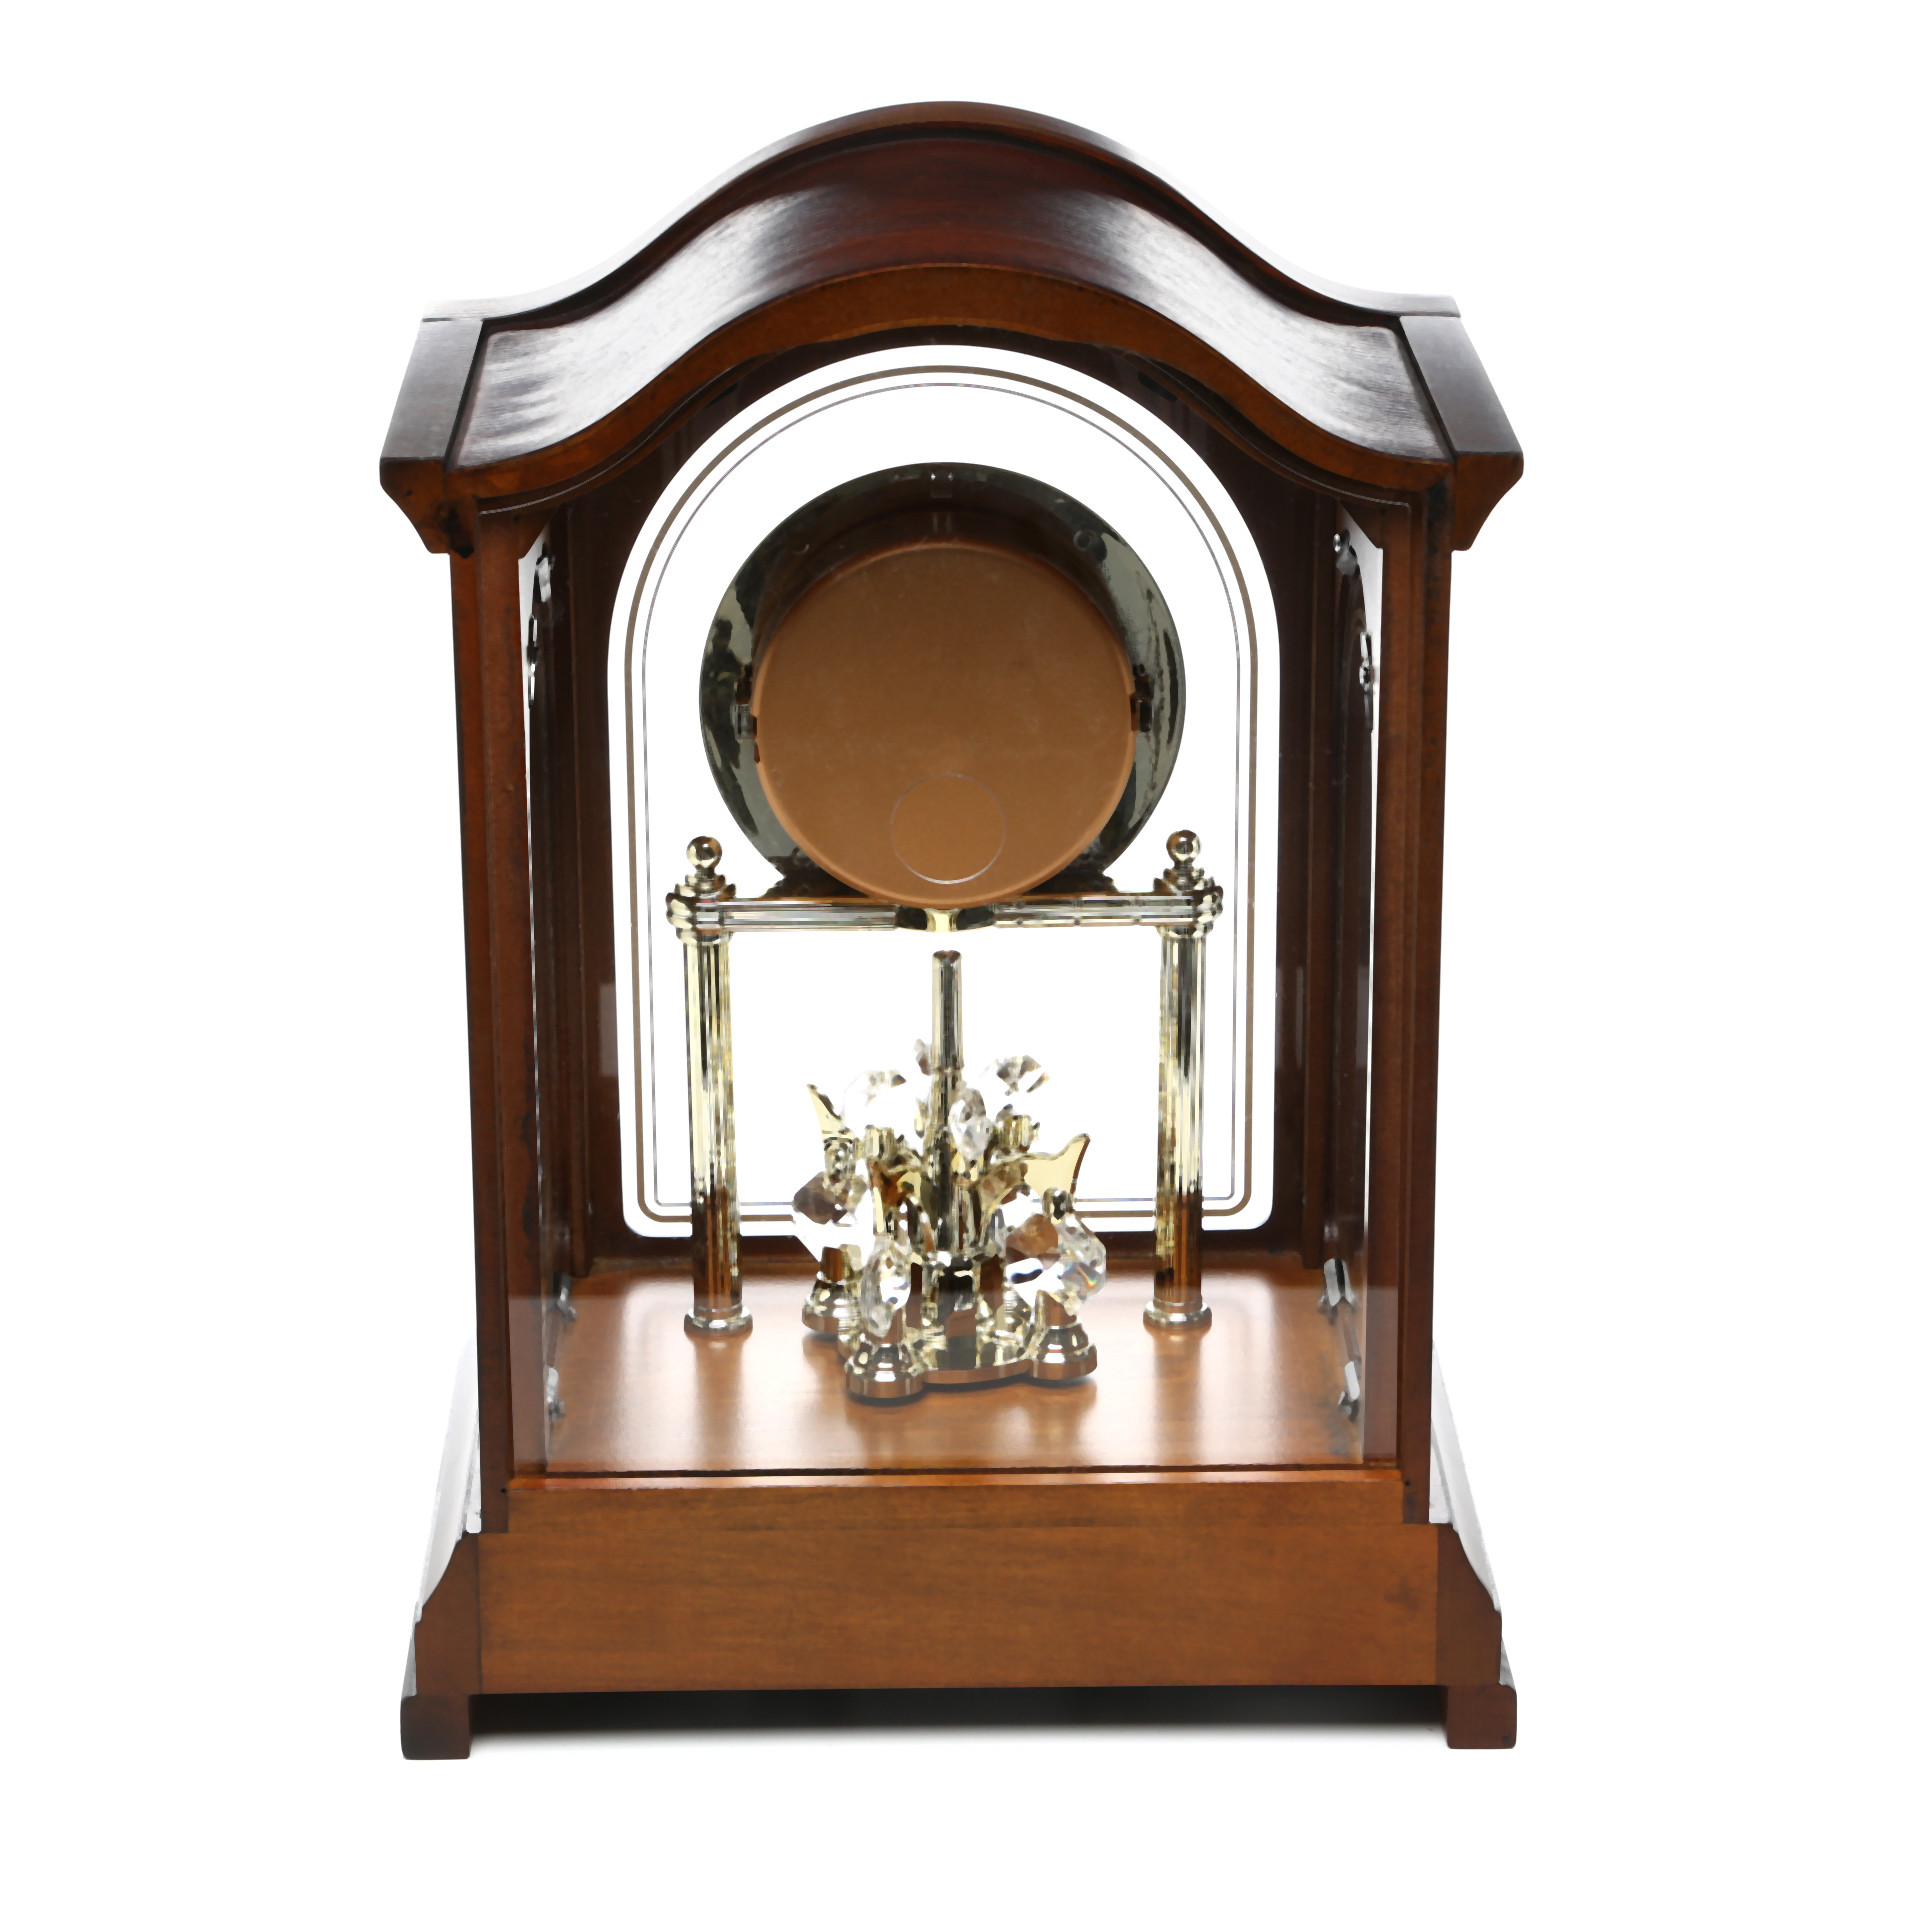 Mantal Clocks | Bulova Mantel Clock | Bulova Alarm Clocks